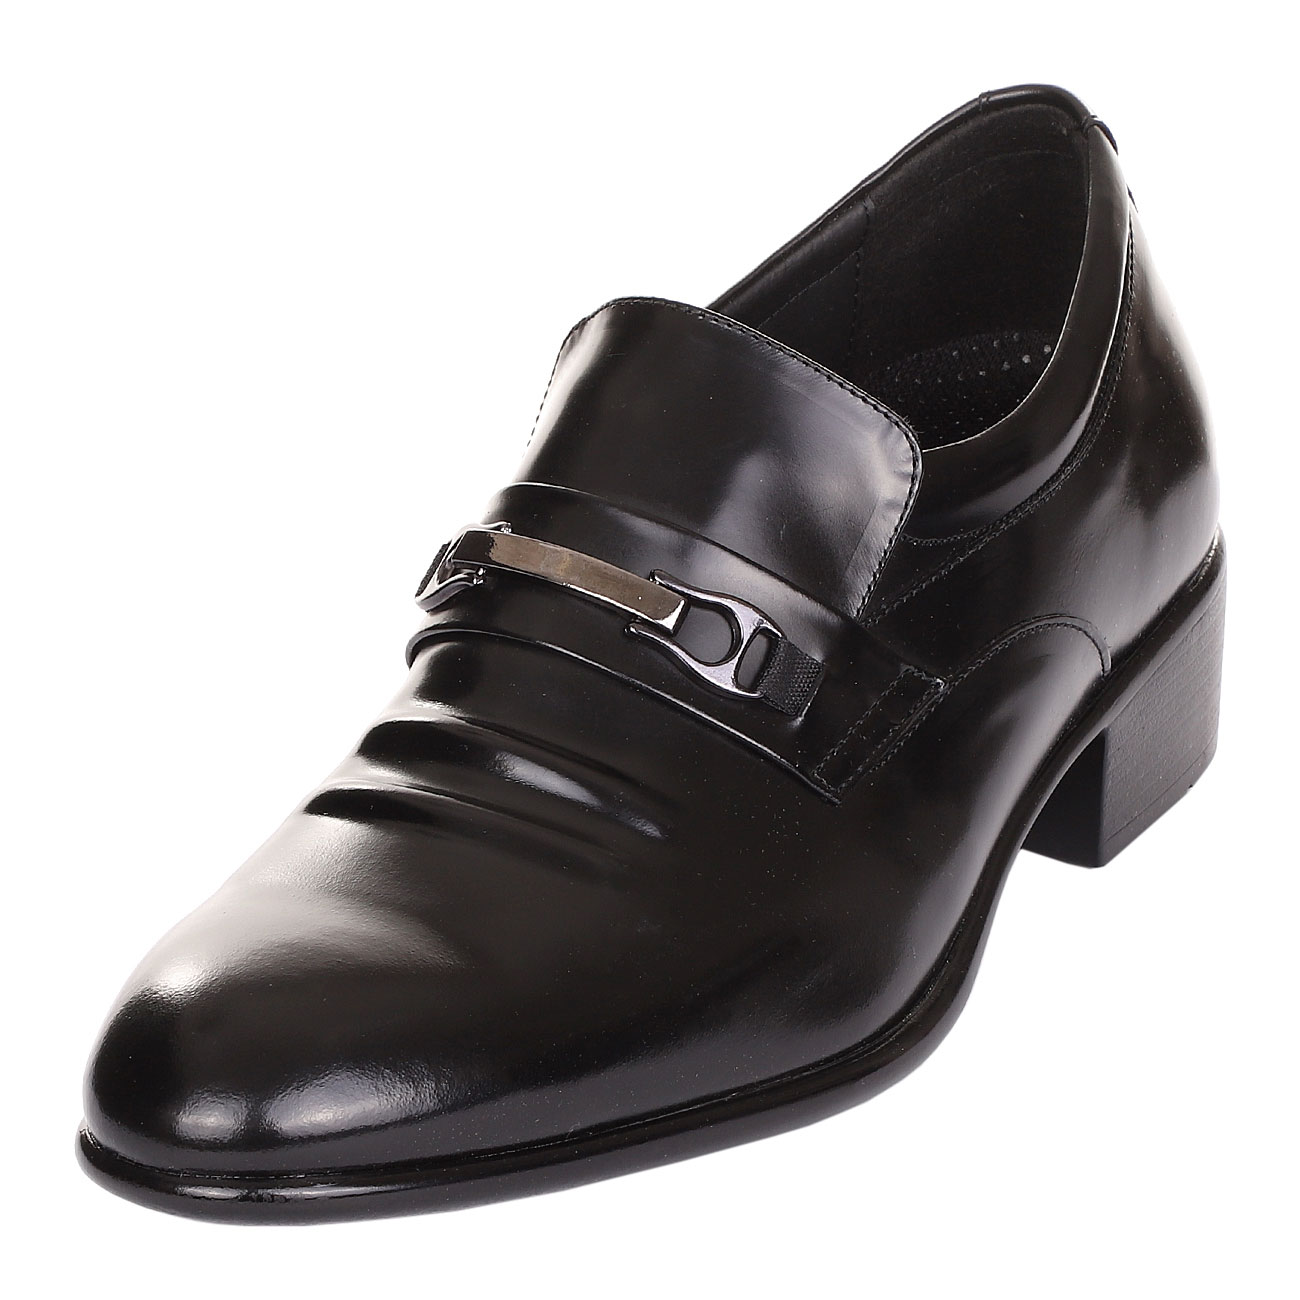 KL9640, Limited Comfort  Luxury Loafer Executives To Glamorize On Special Occasions-1